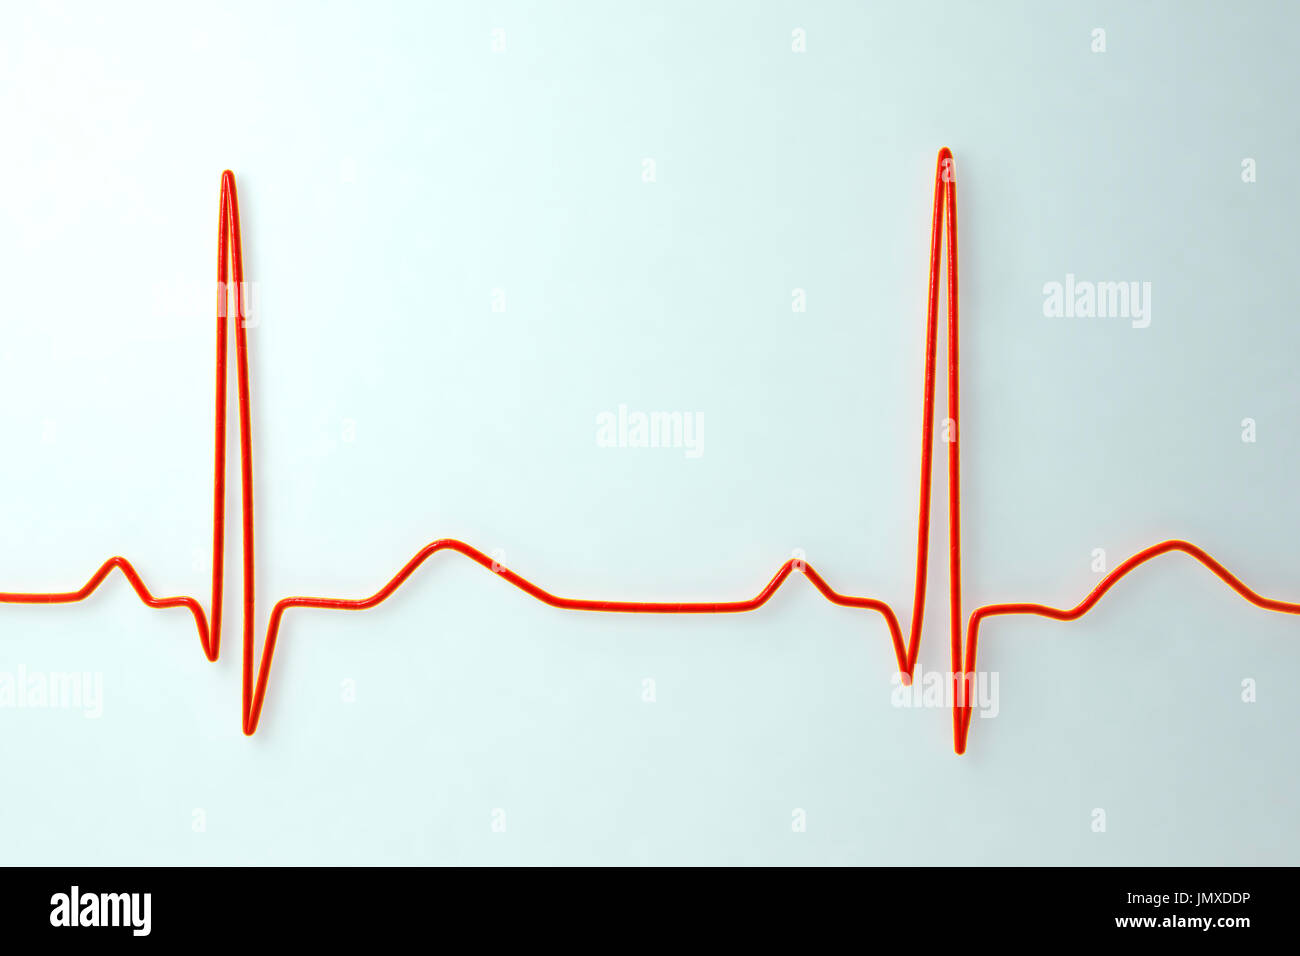 hight resolution of computer illustration of an electrocardiogram ecg showing a normal heart rate